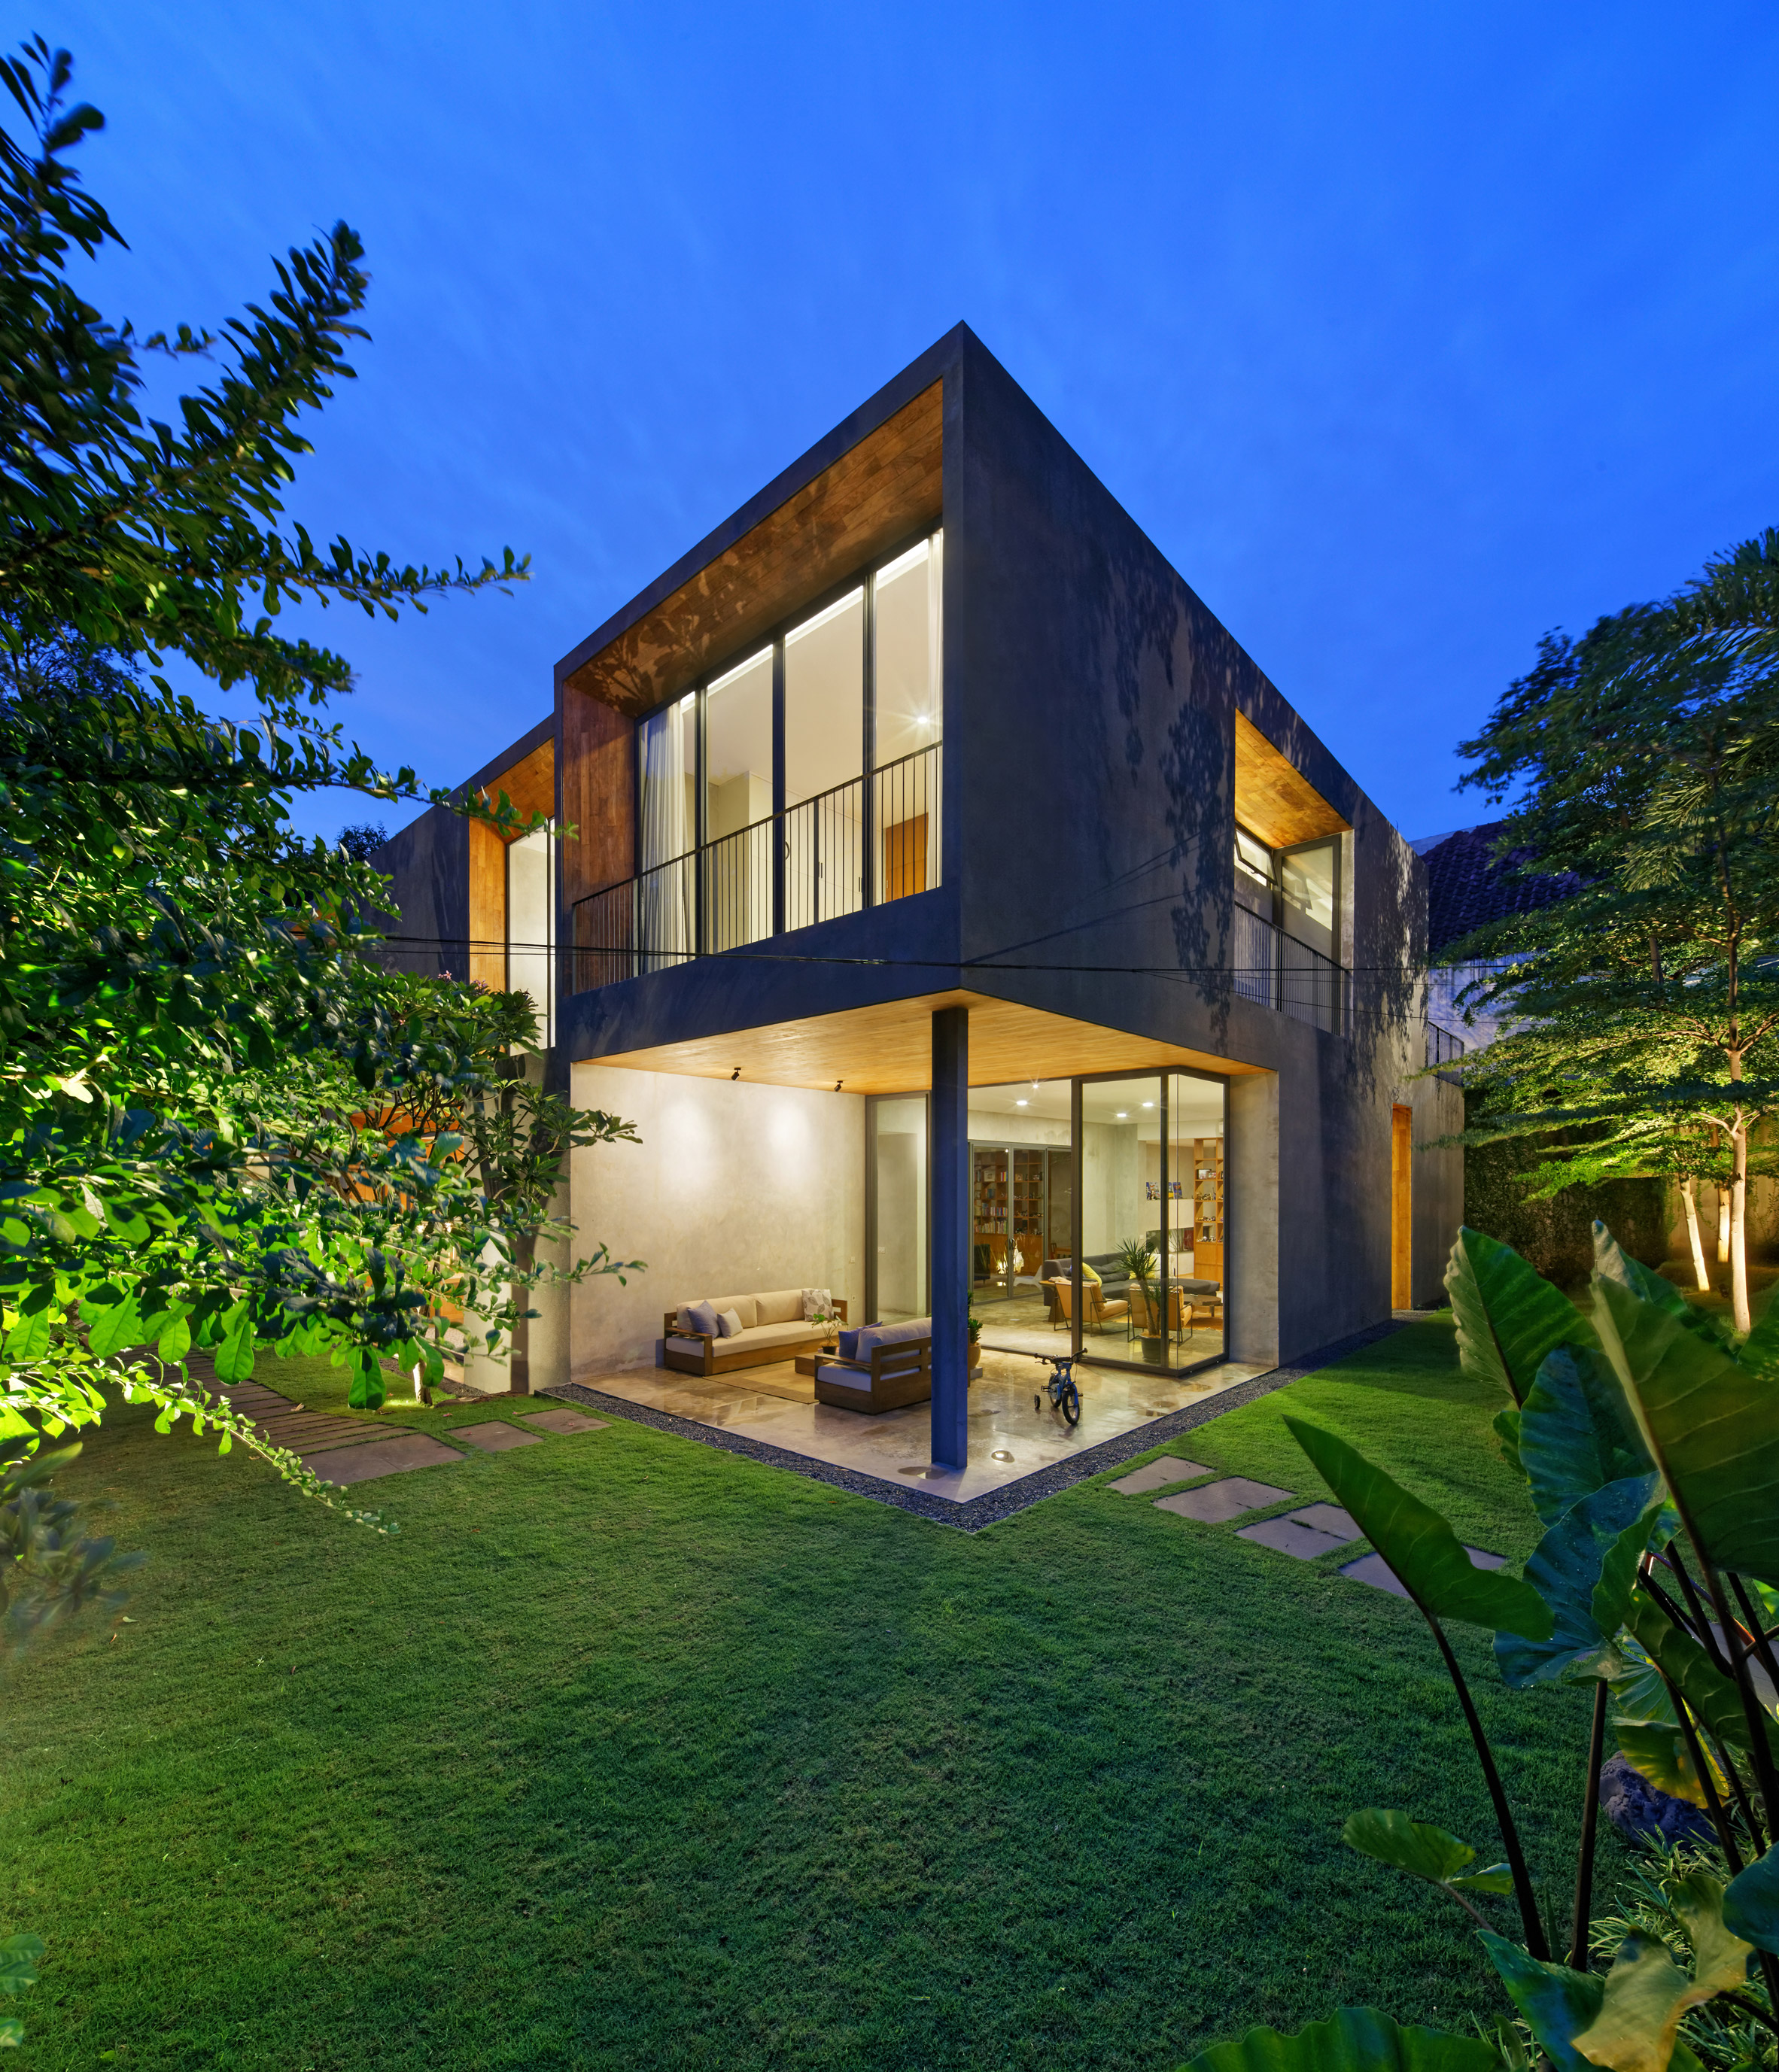 house-inside-outside-tamara-wibowo-architecture-residential-indonesia_dezeen_2364_col_6.jpg